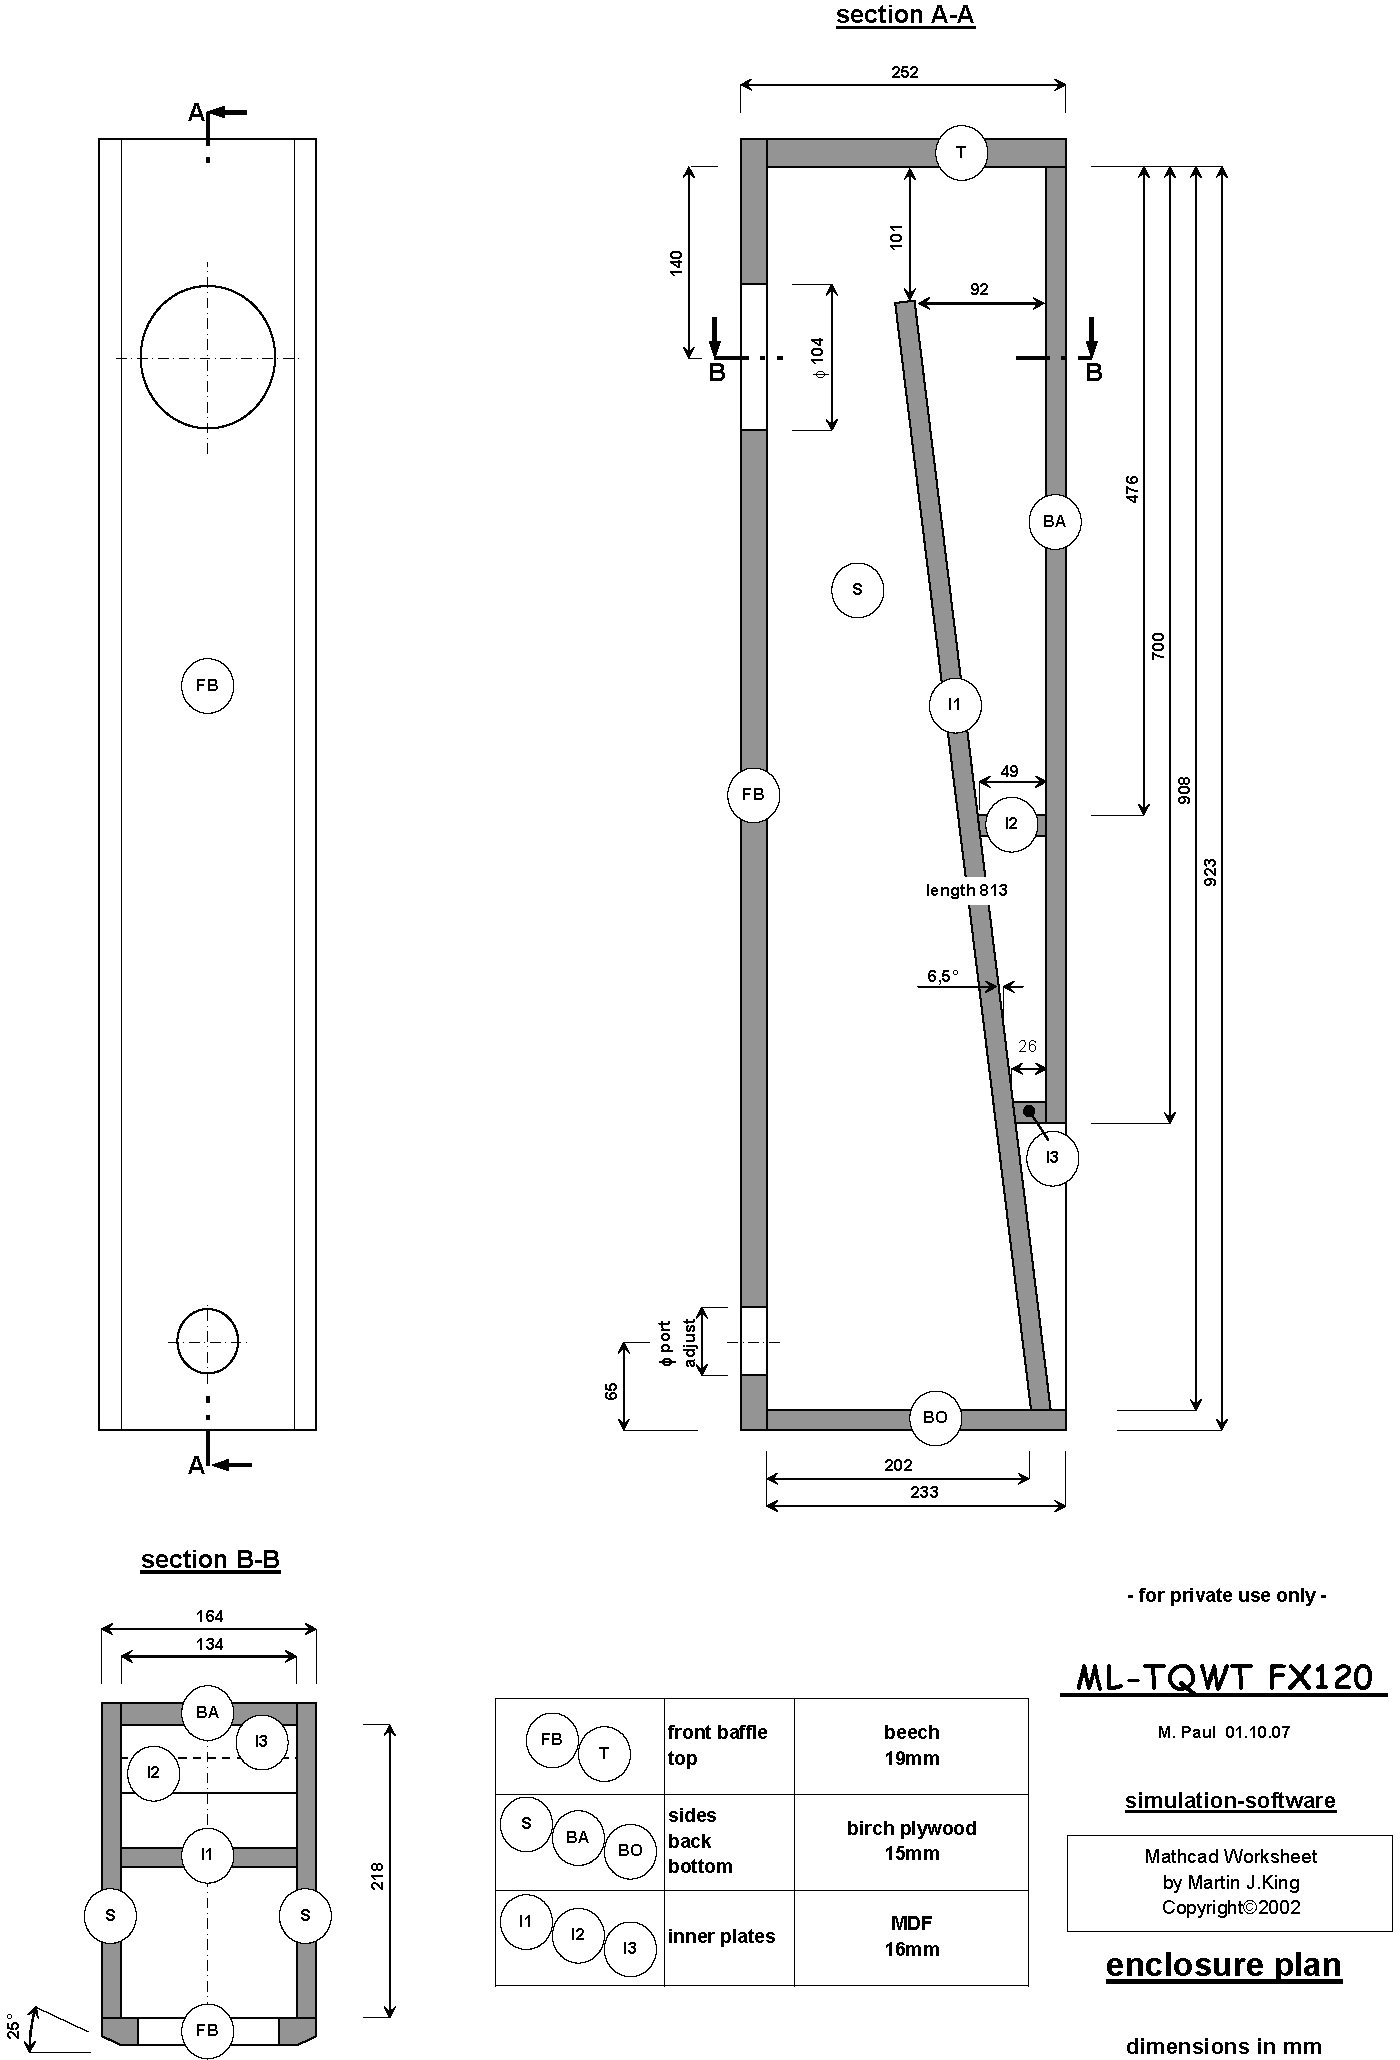 Fostex Fx120 Ml Tqwt Transmission Line Enclosure Plan Drawing